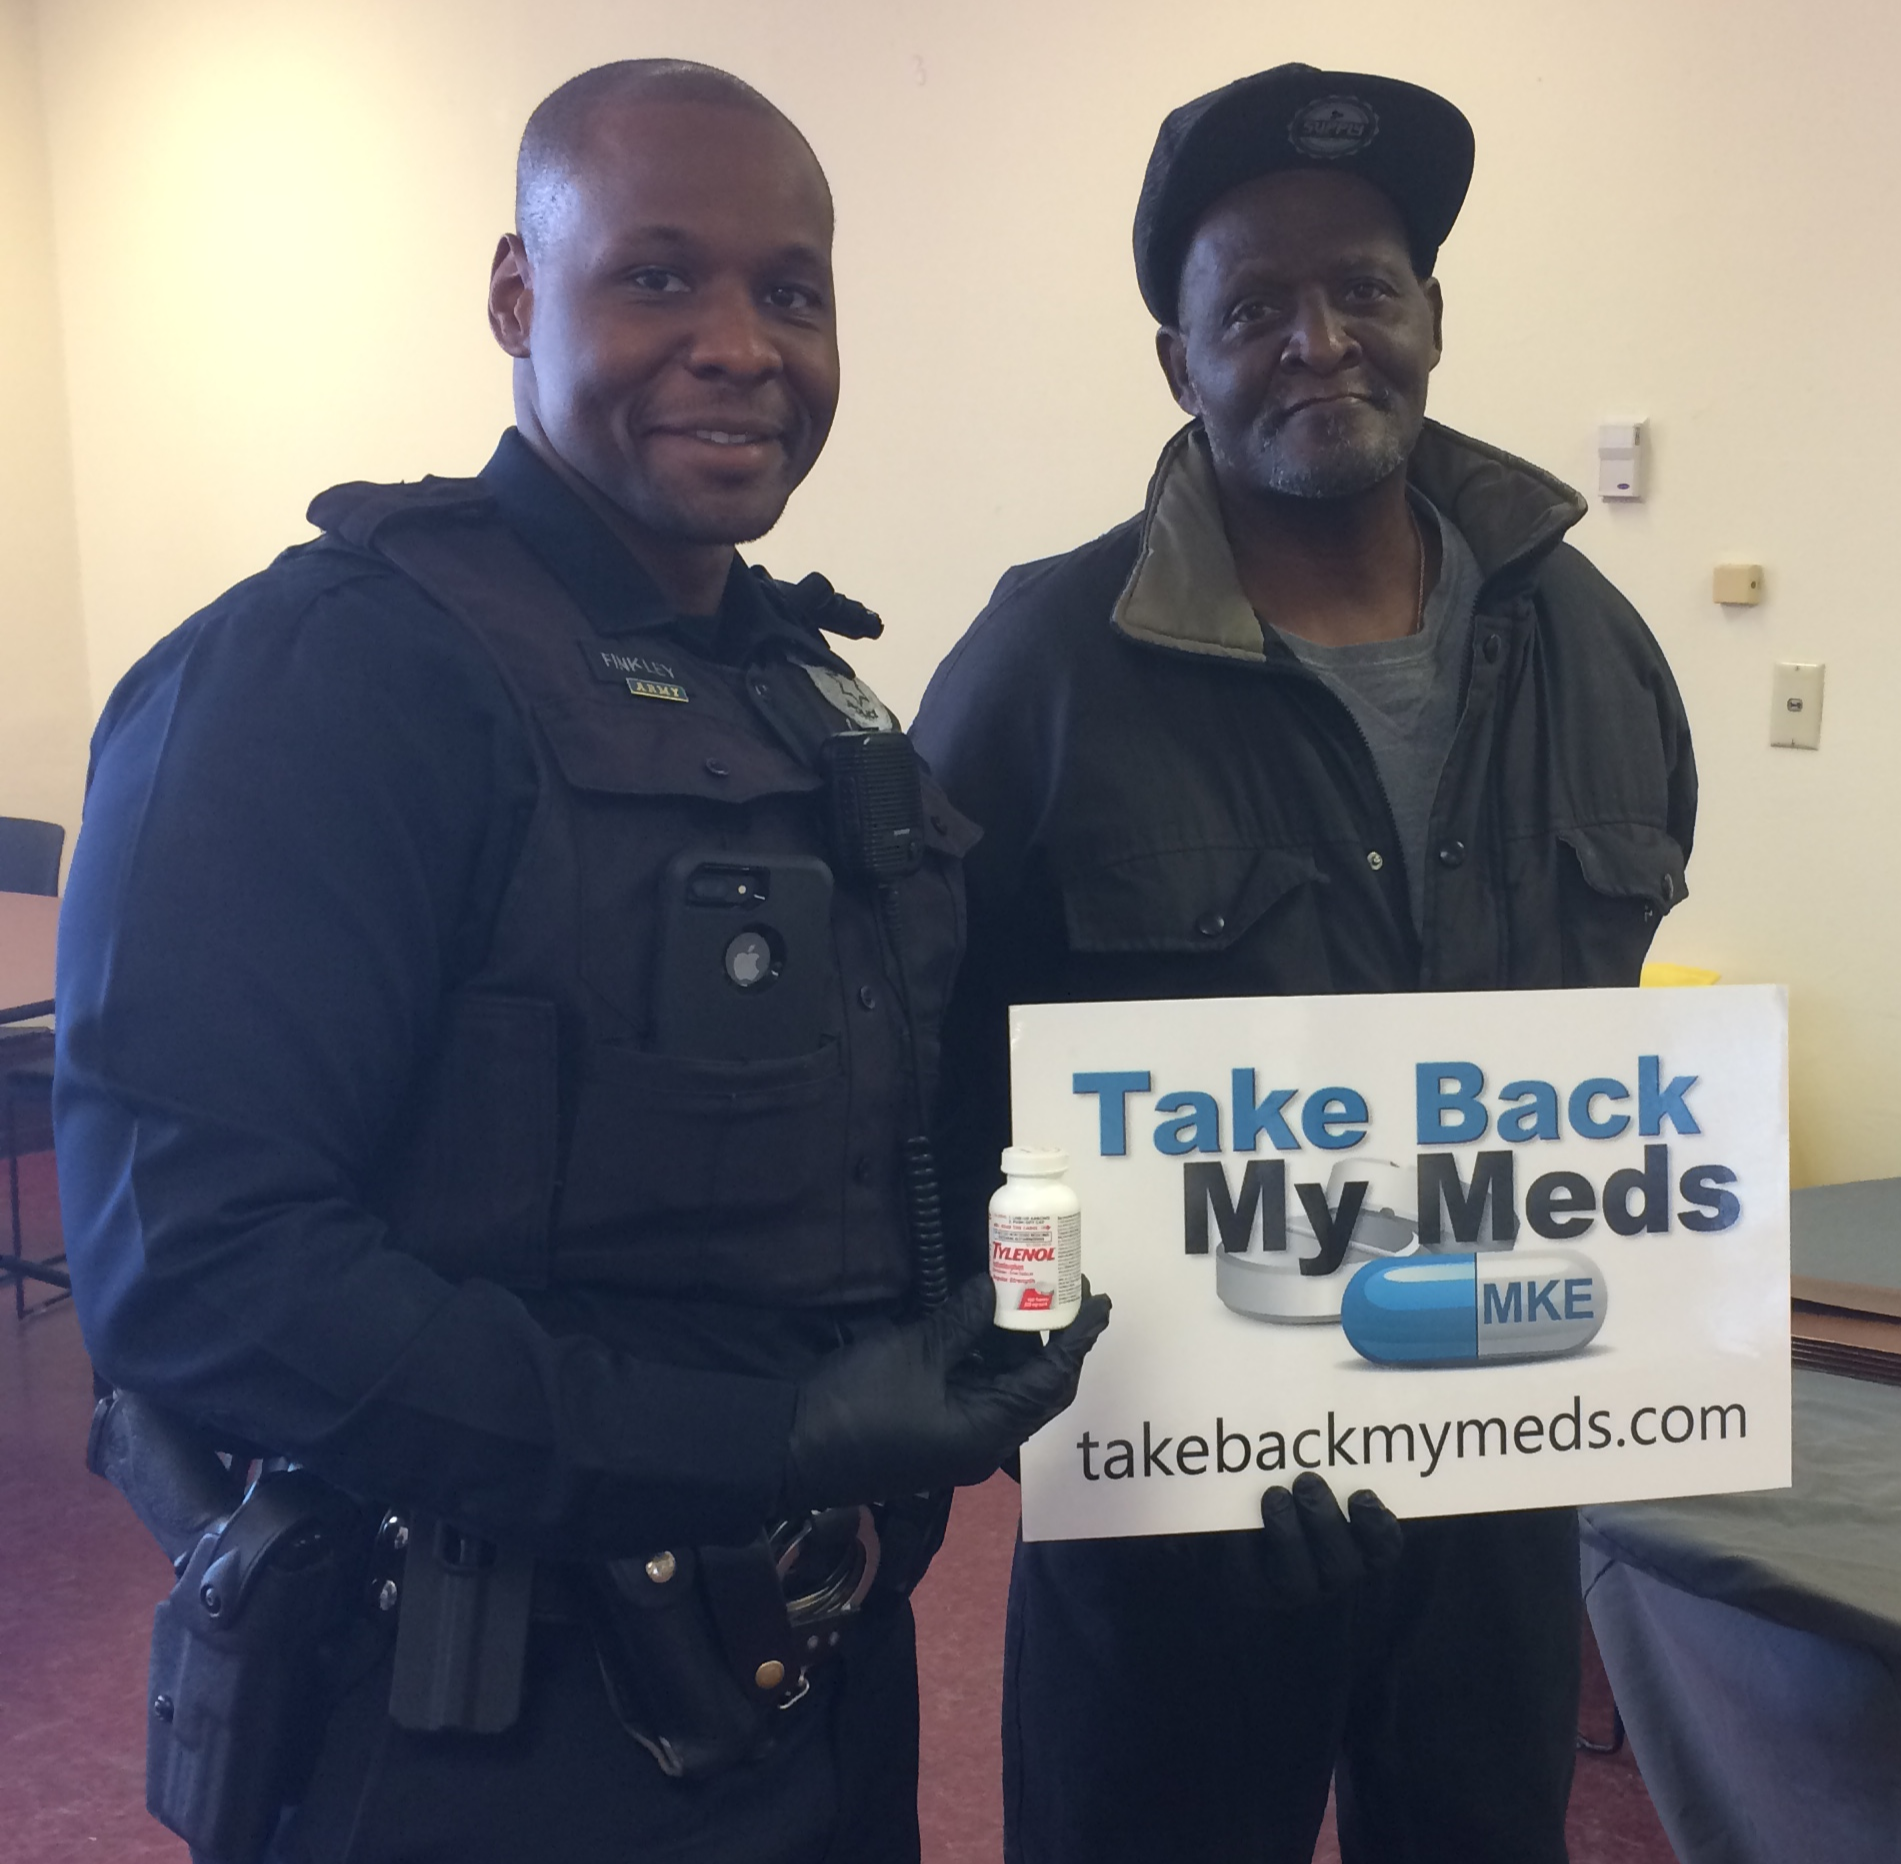 Spotlight On: Take Back My Meds MKE